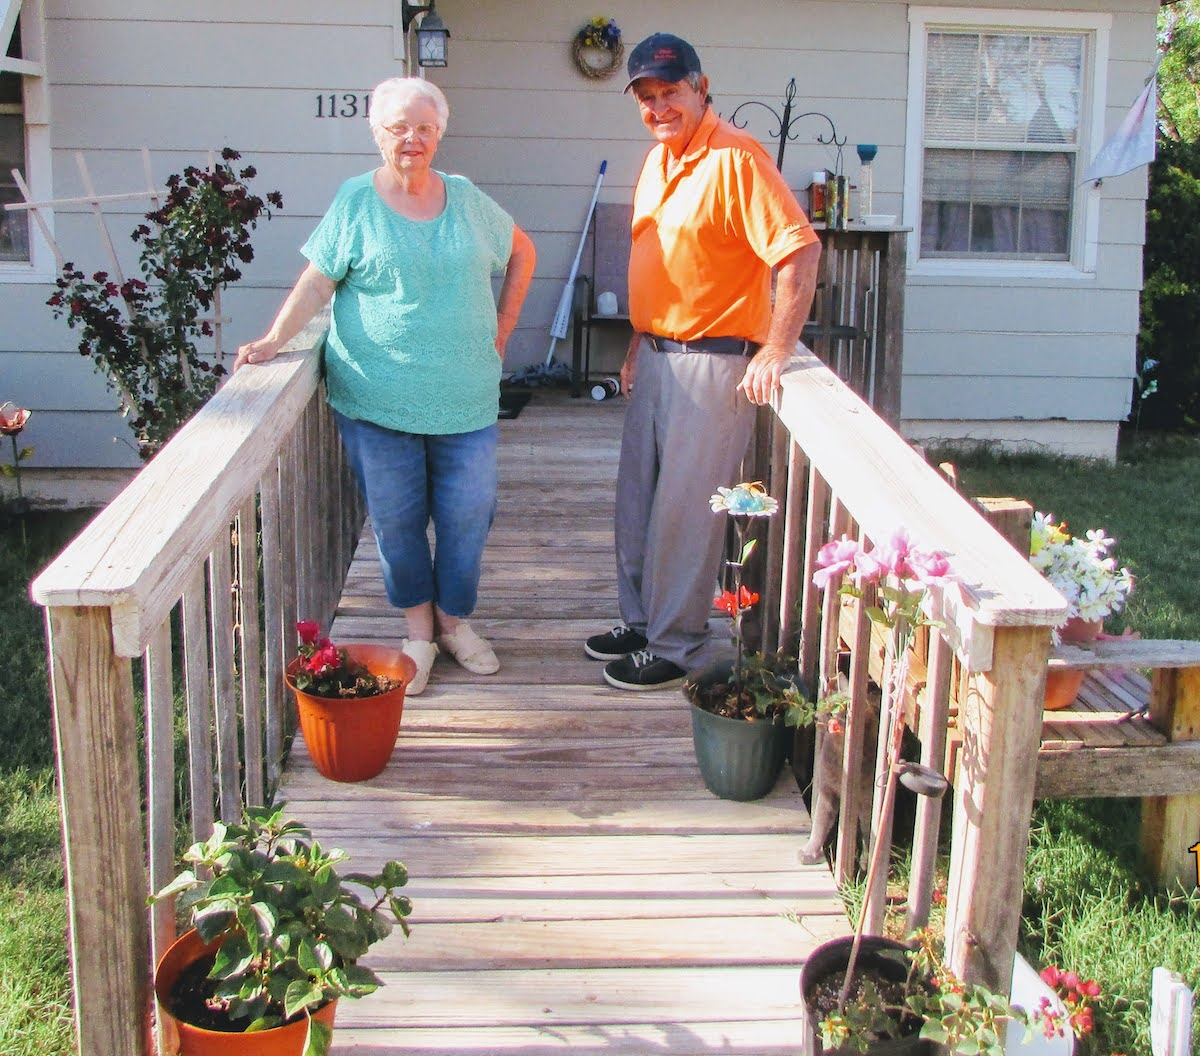 James and Betty on porch of small home in Munday.